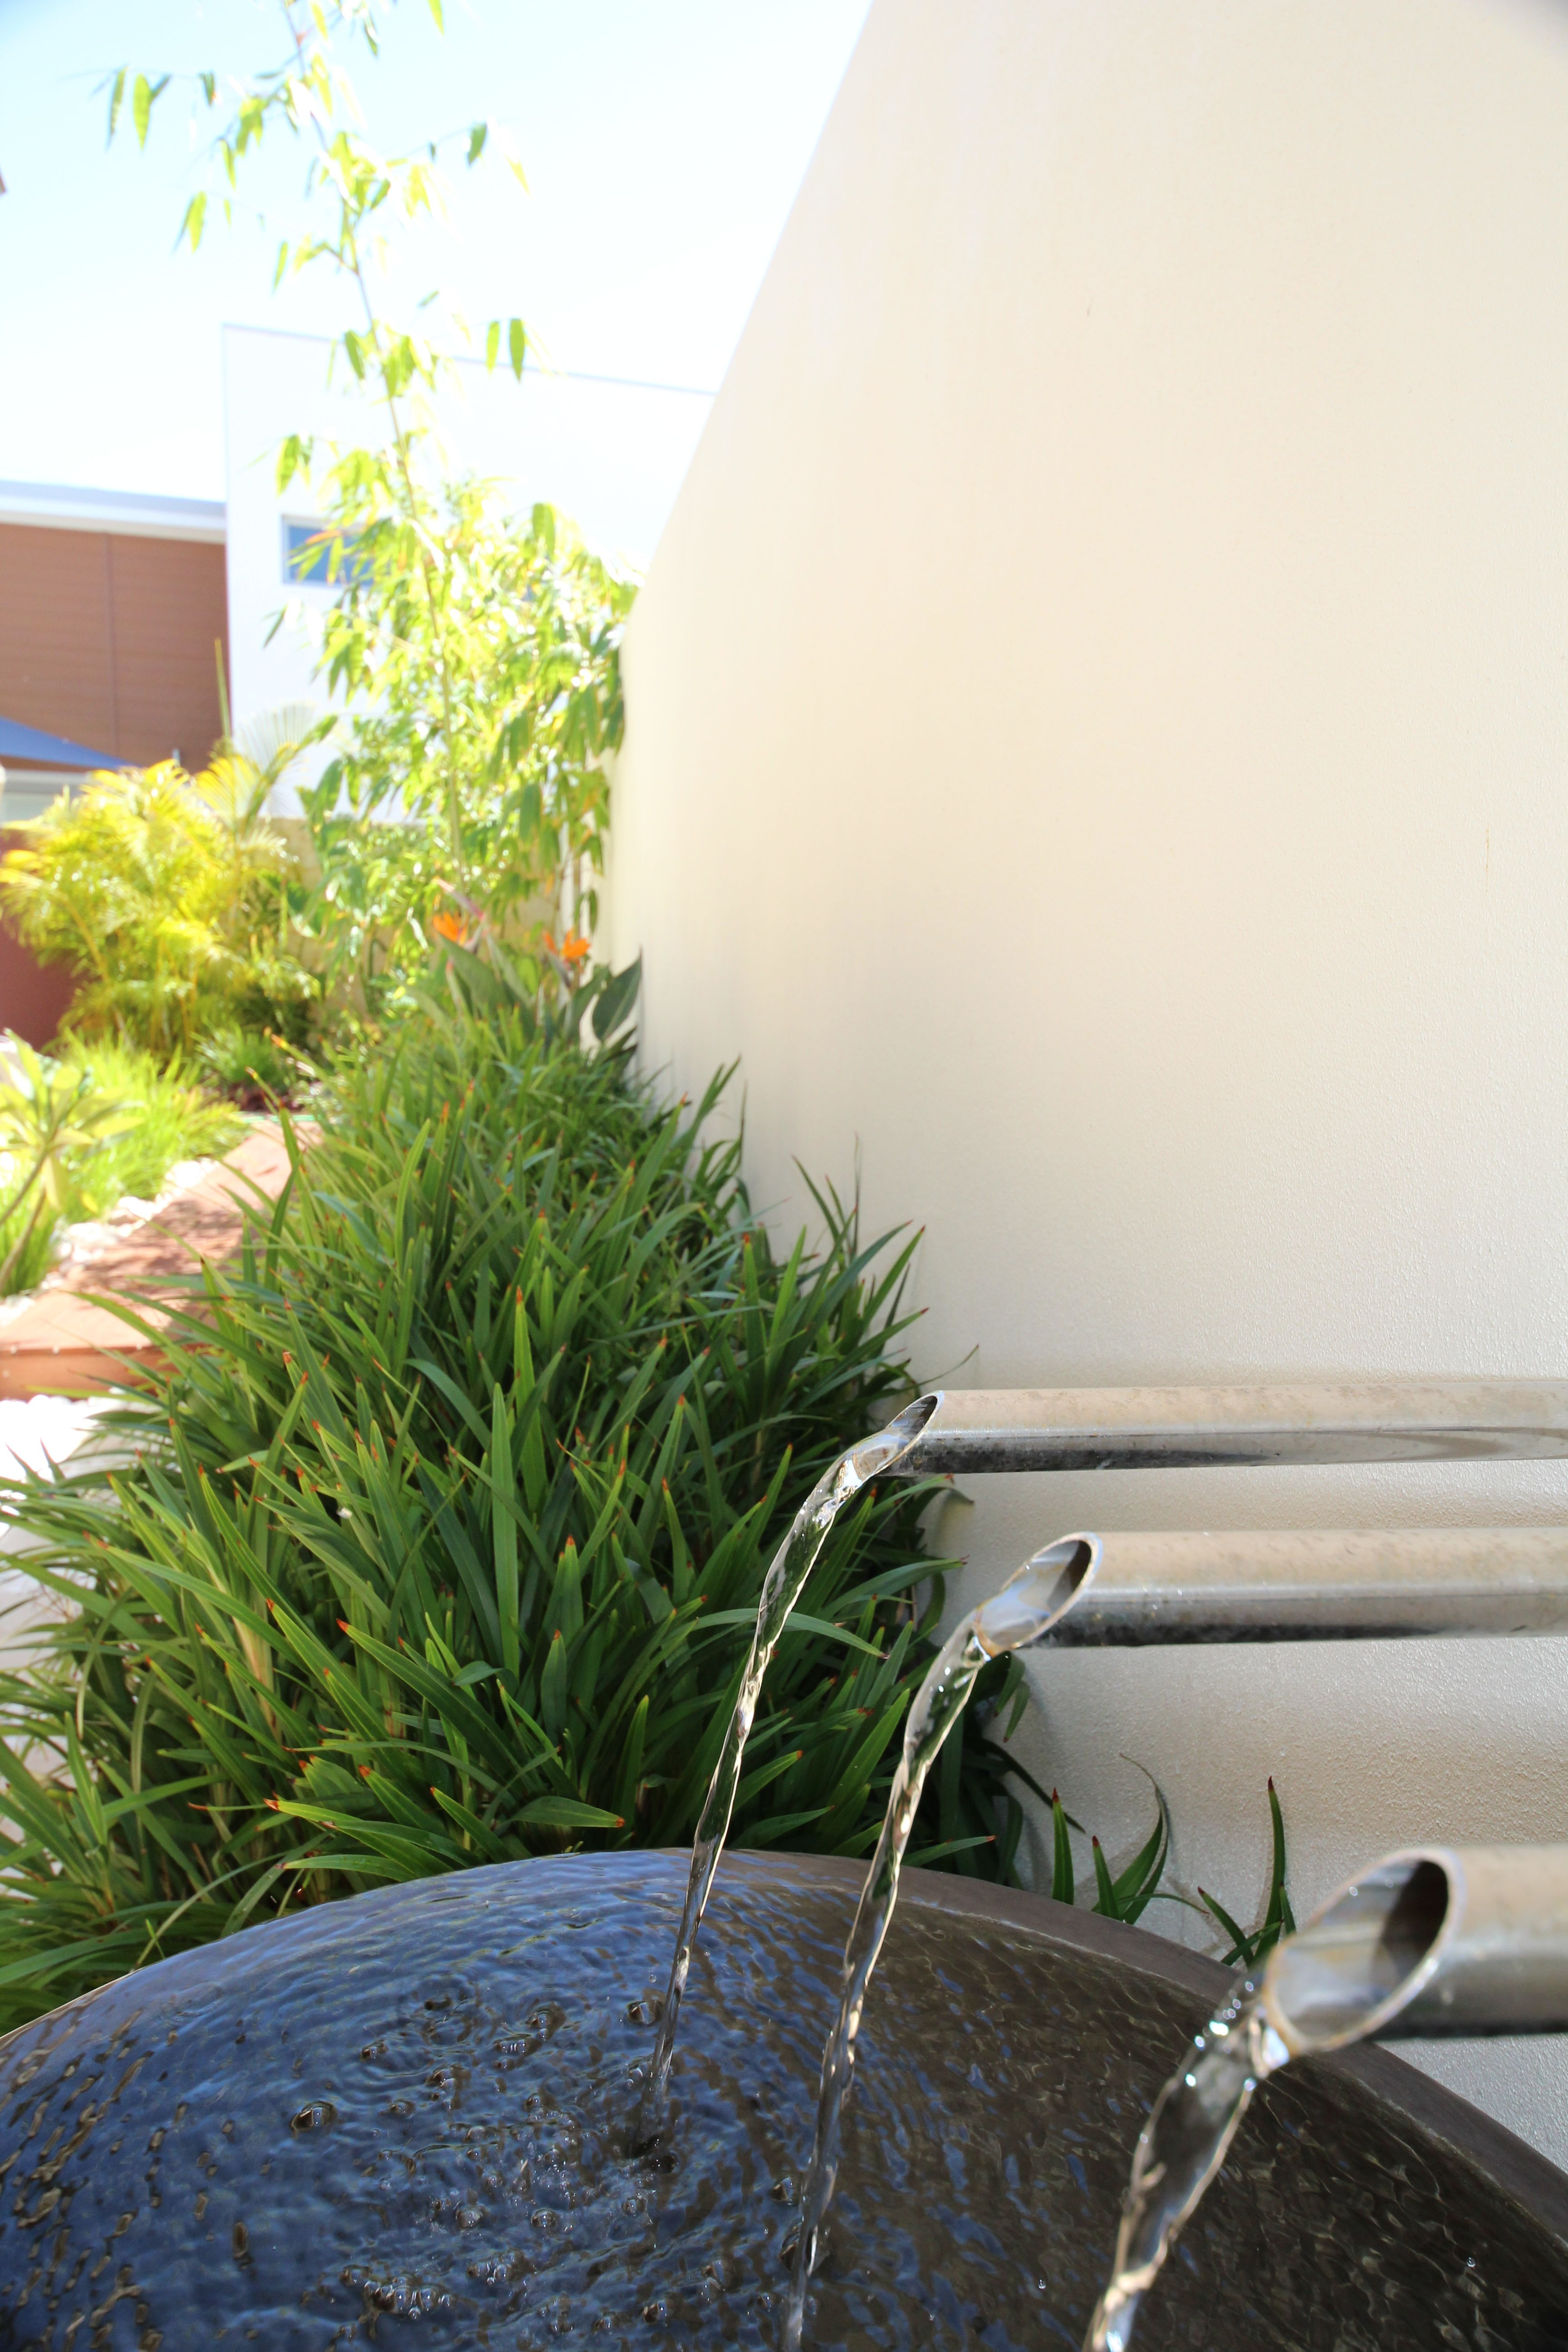 Waterfeature with stainless steel spouts